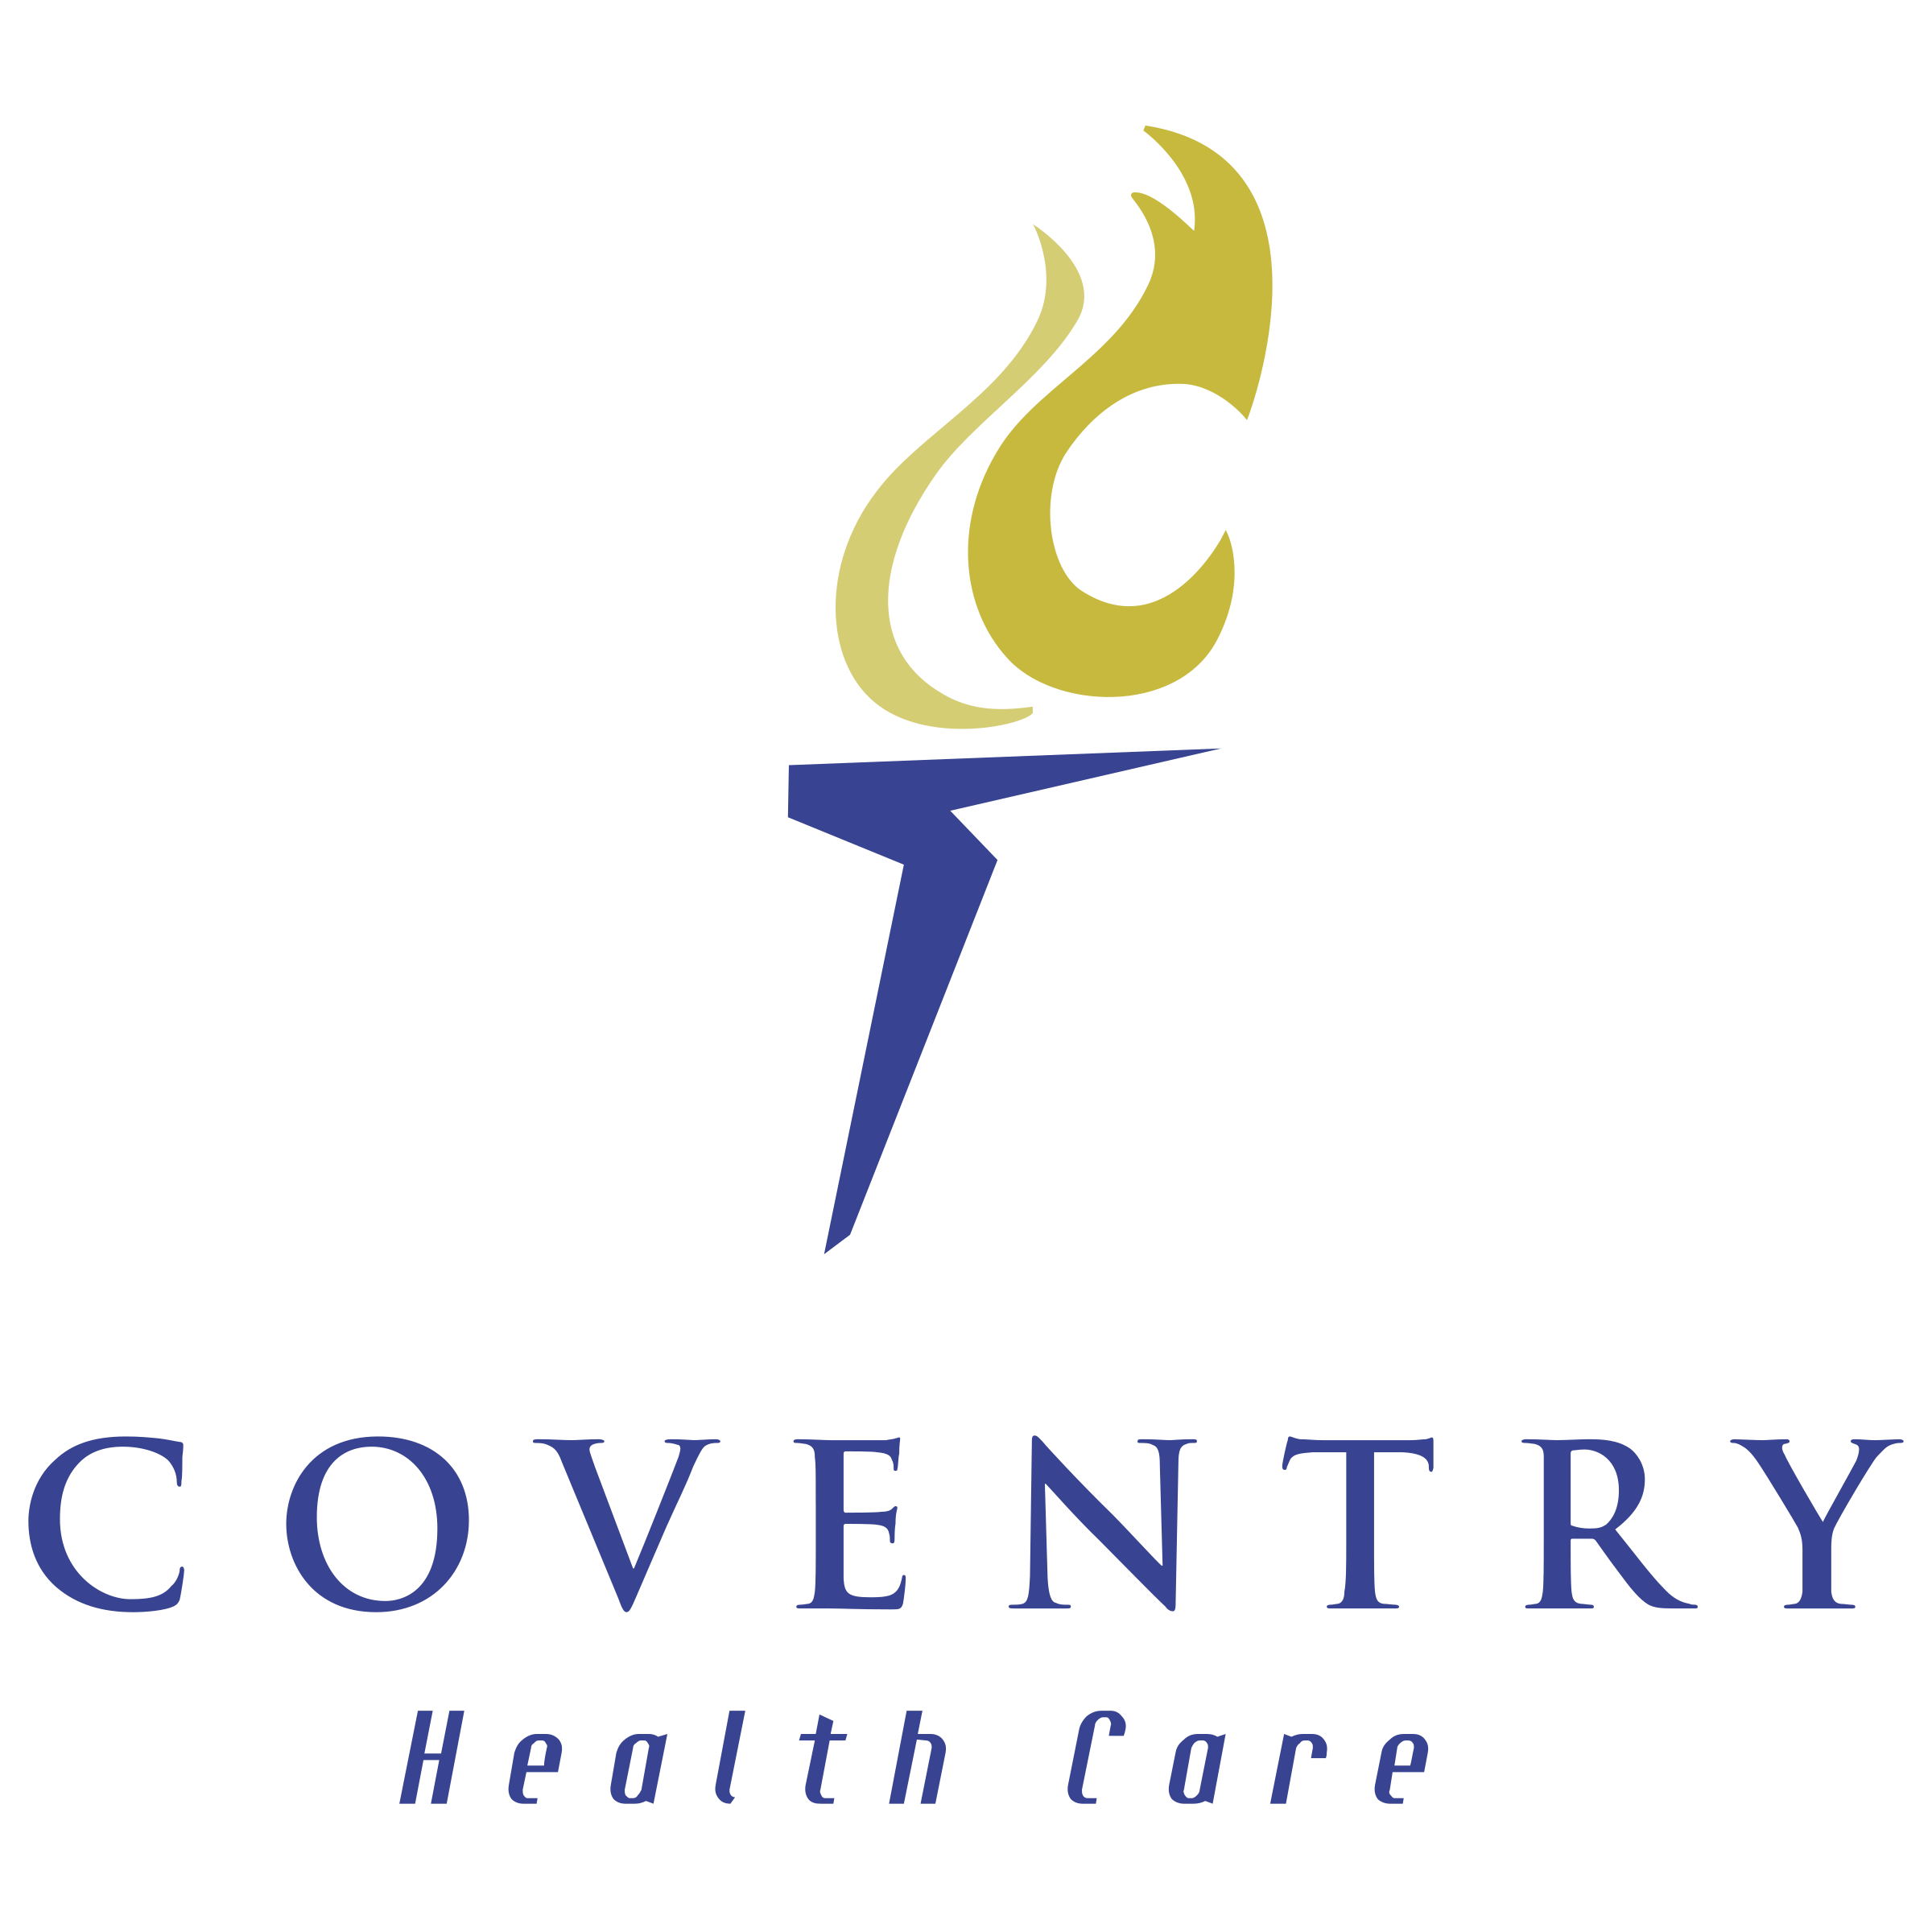 coventry-health-care-logo-png-transparent.png